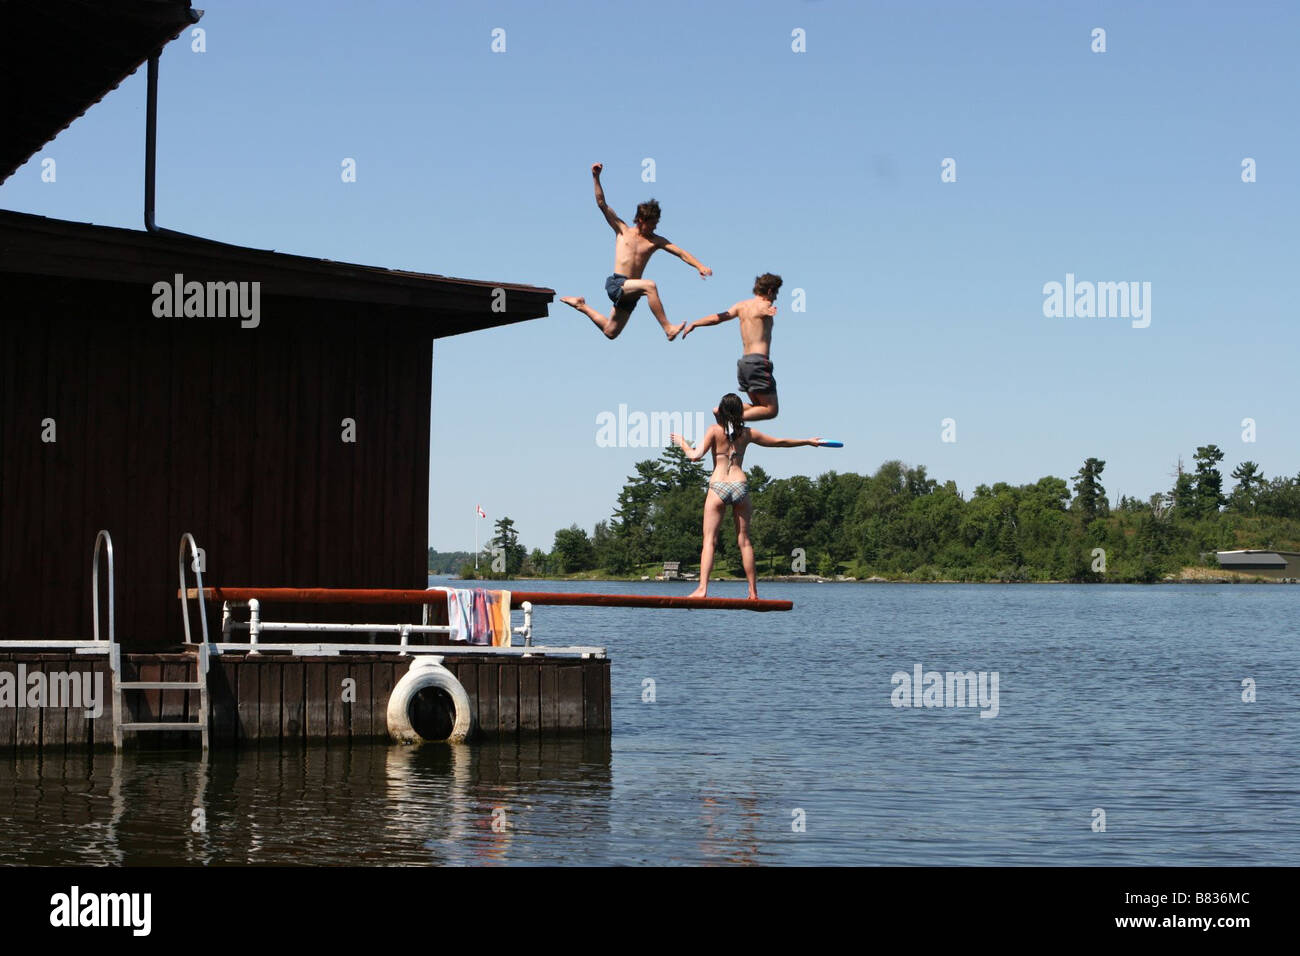 Bissonnette Stock Photos & Bissonnette Stock Images - Alamy